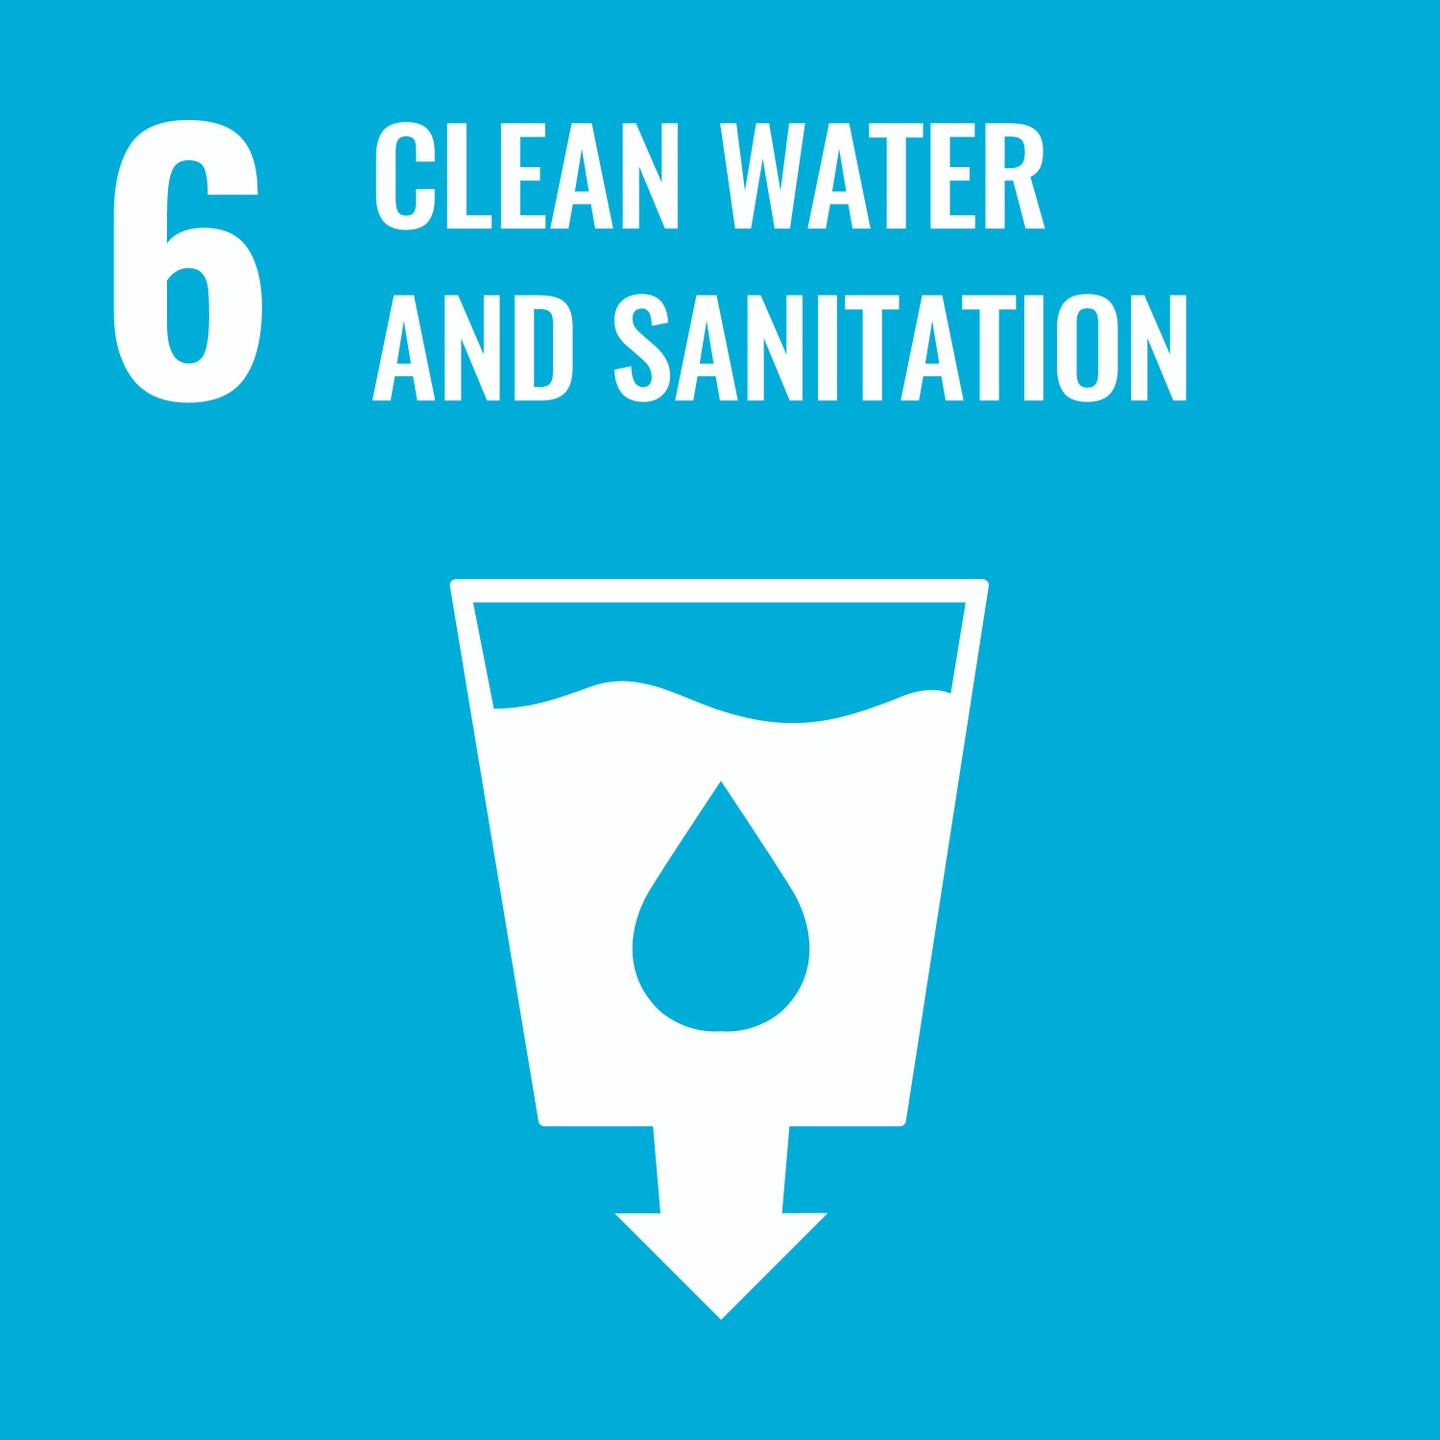 Goal 6, Clean Water and Sanitisation, of The UN's Sustainable Development Goals (SDGs) Official Logo